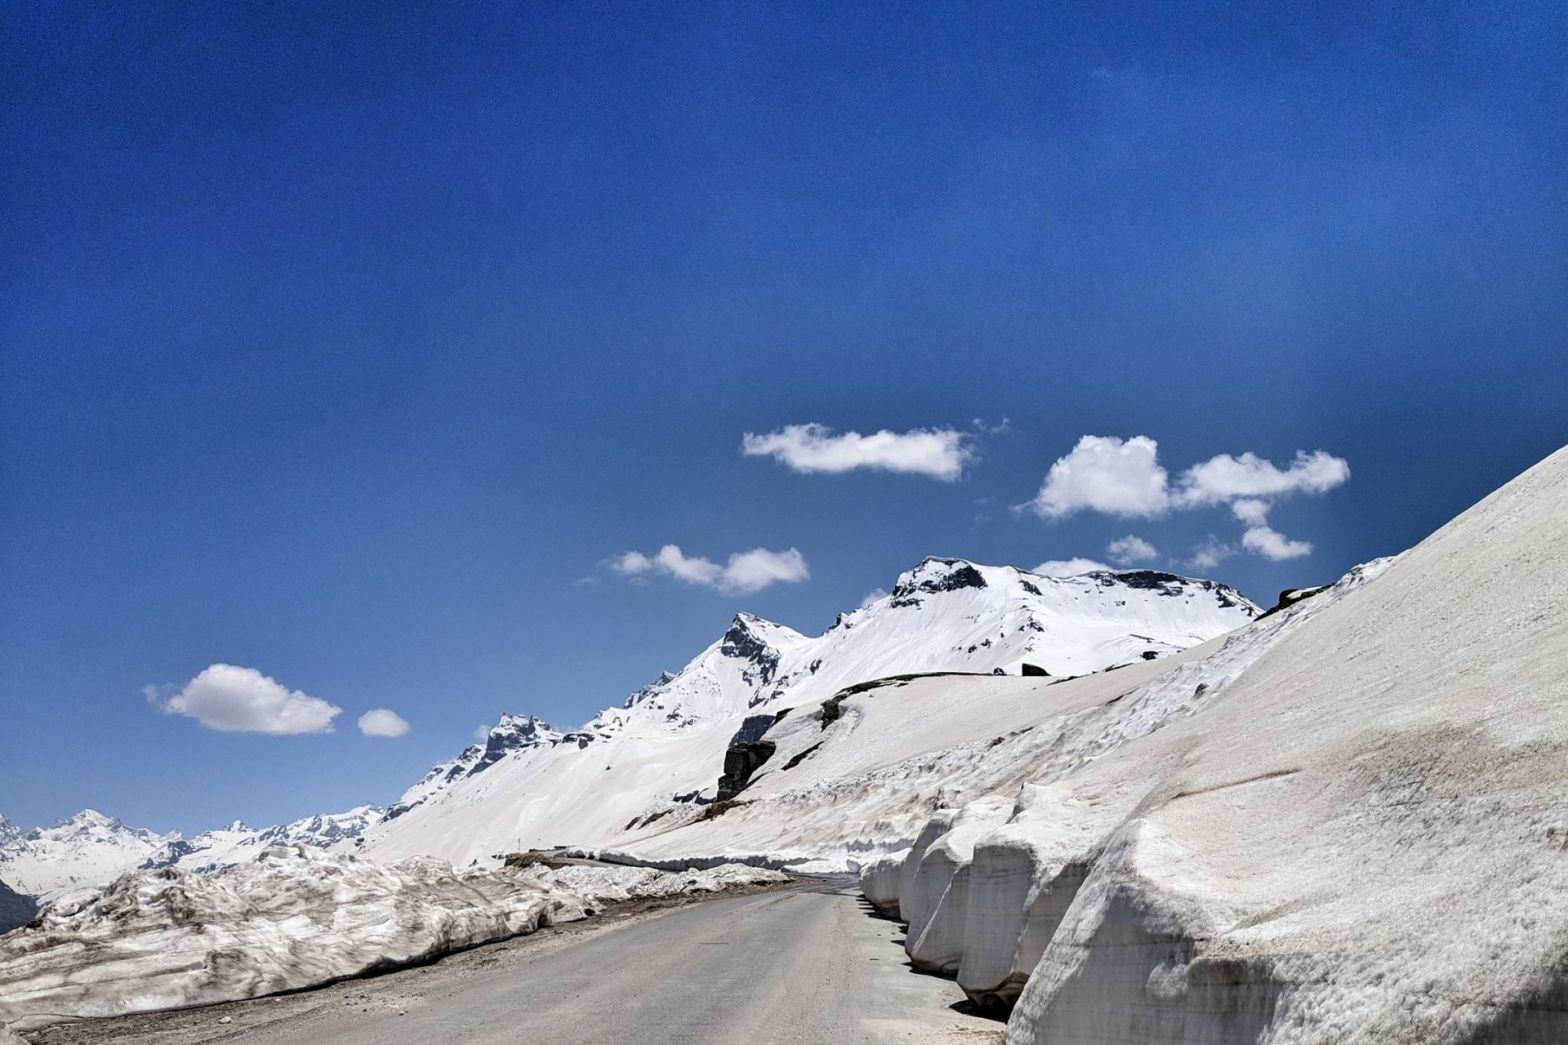 One Day Manali to Rohtang Pass Trip by Cab